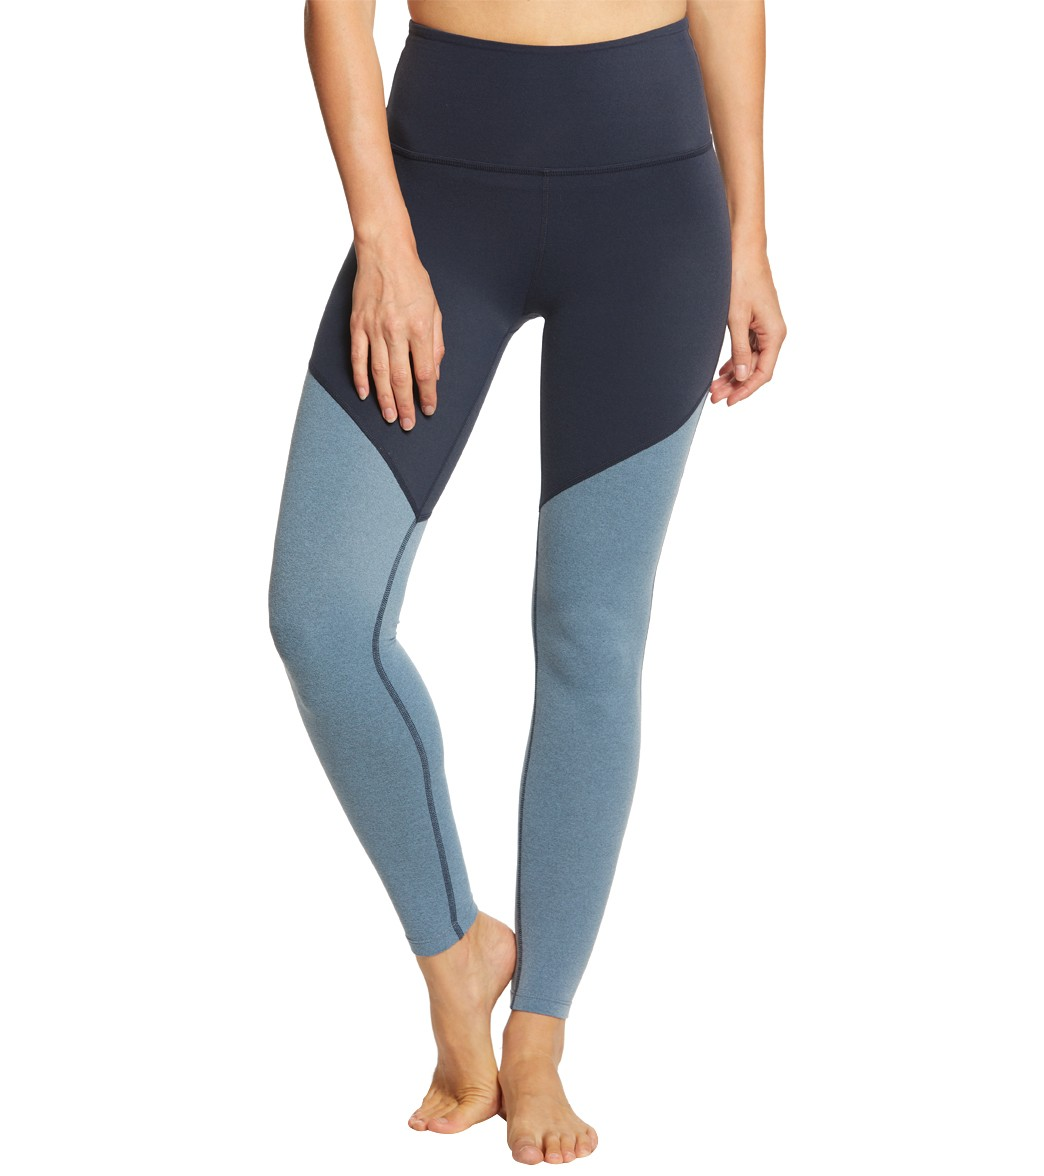 3230bbfab68dc Beyond Yoga Plush Angled High Waisted 7/8 Yoga Leggings at YogaOutlet.com -  Free Shipping